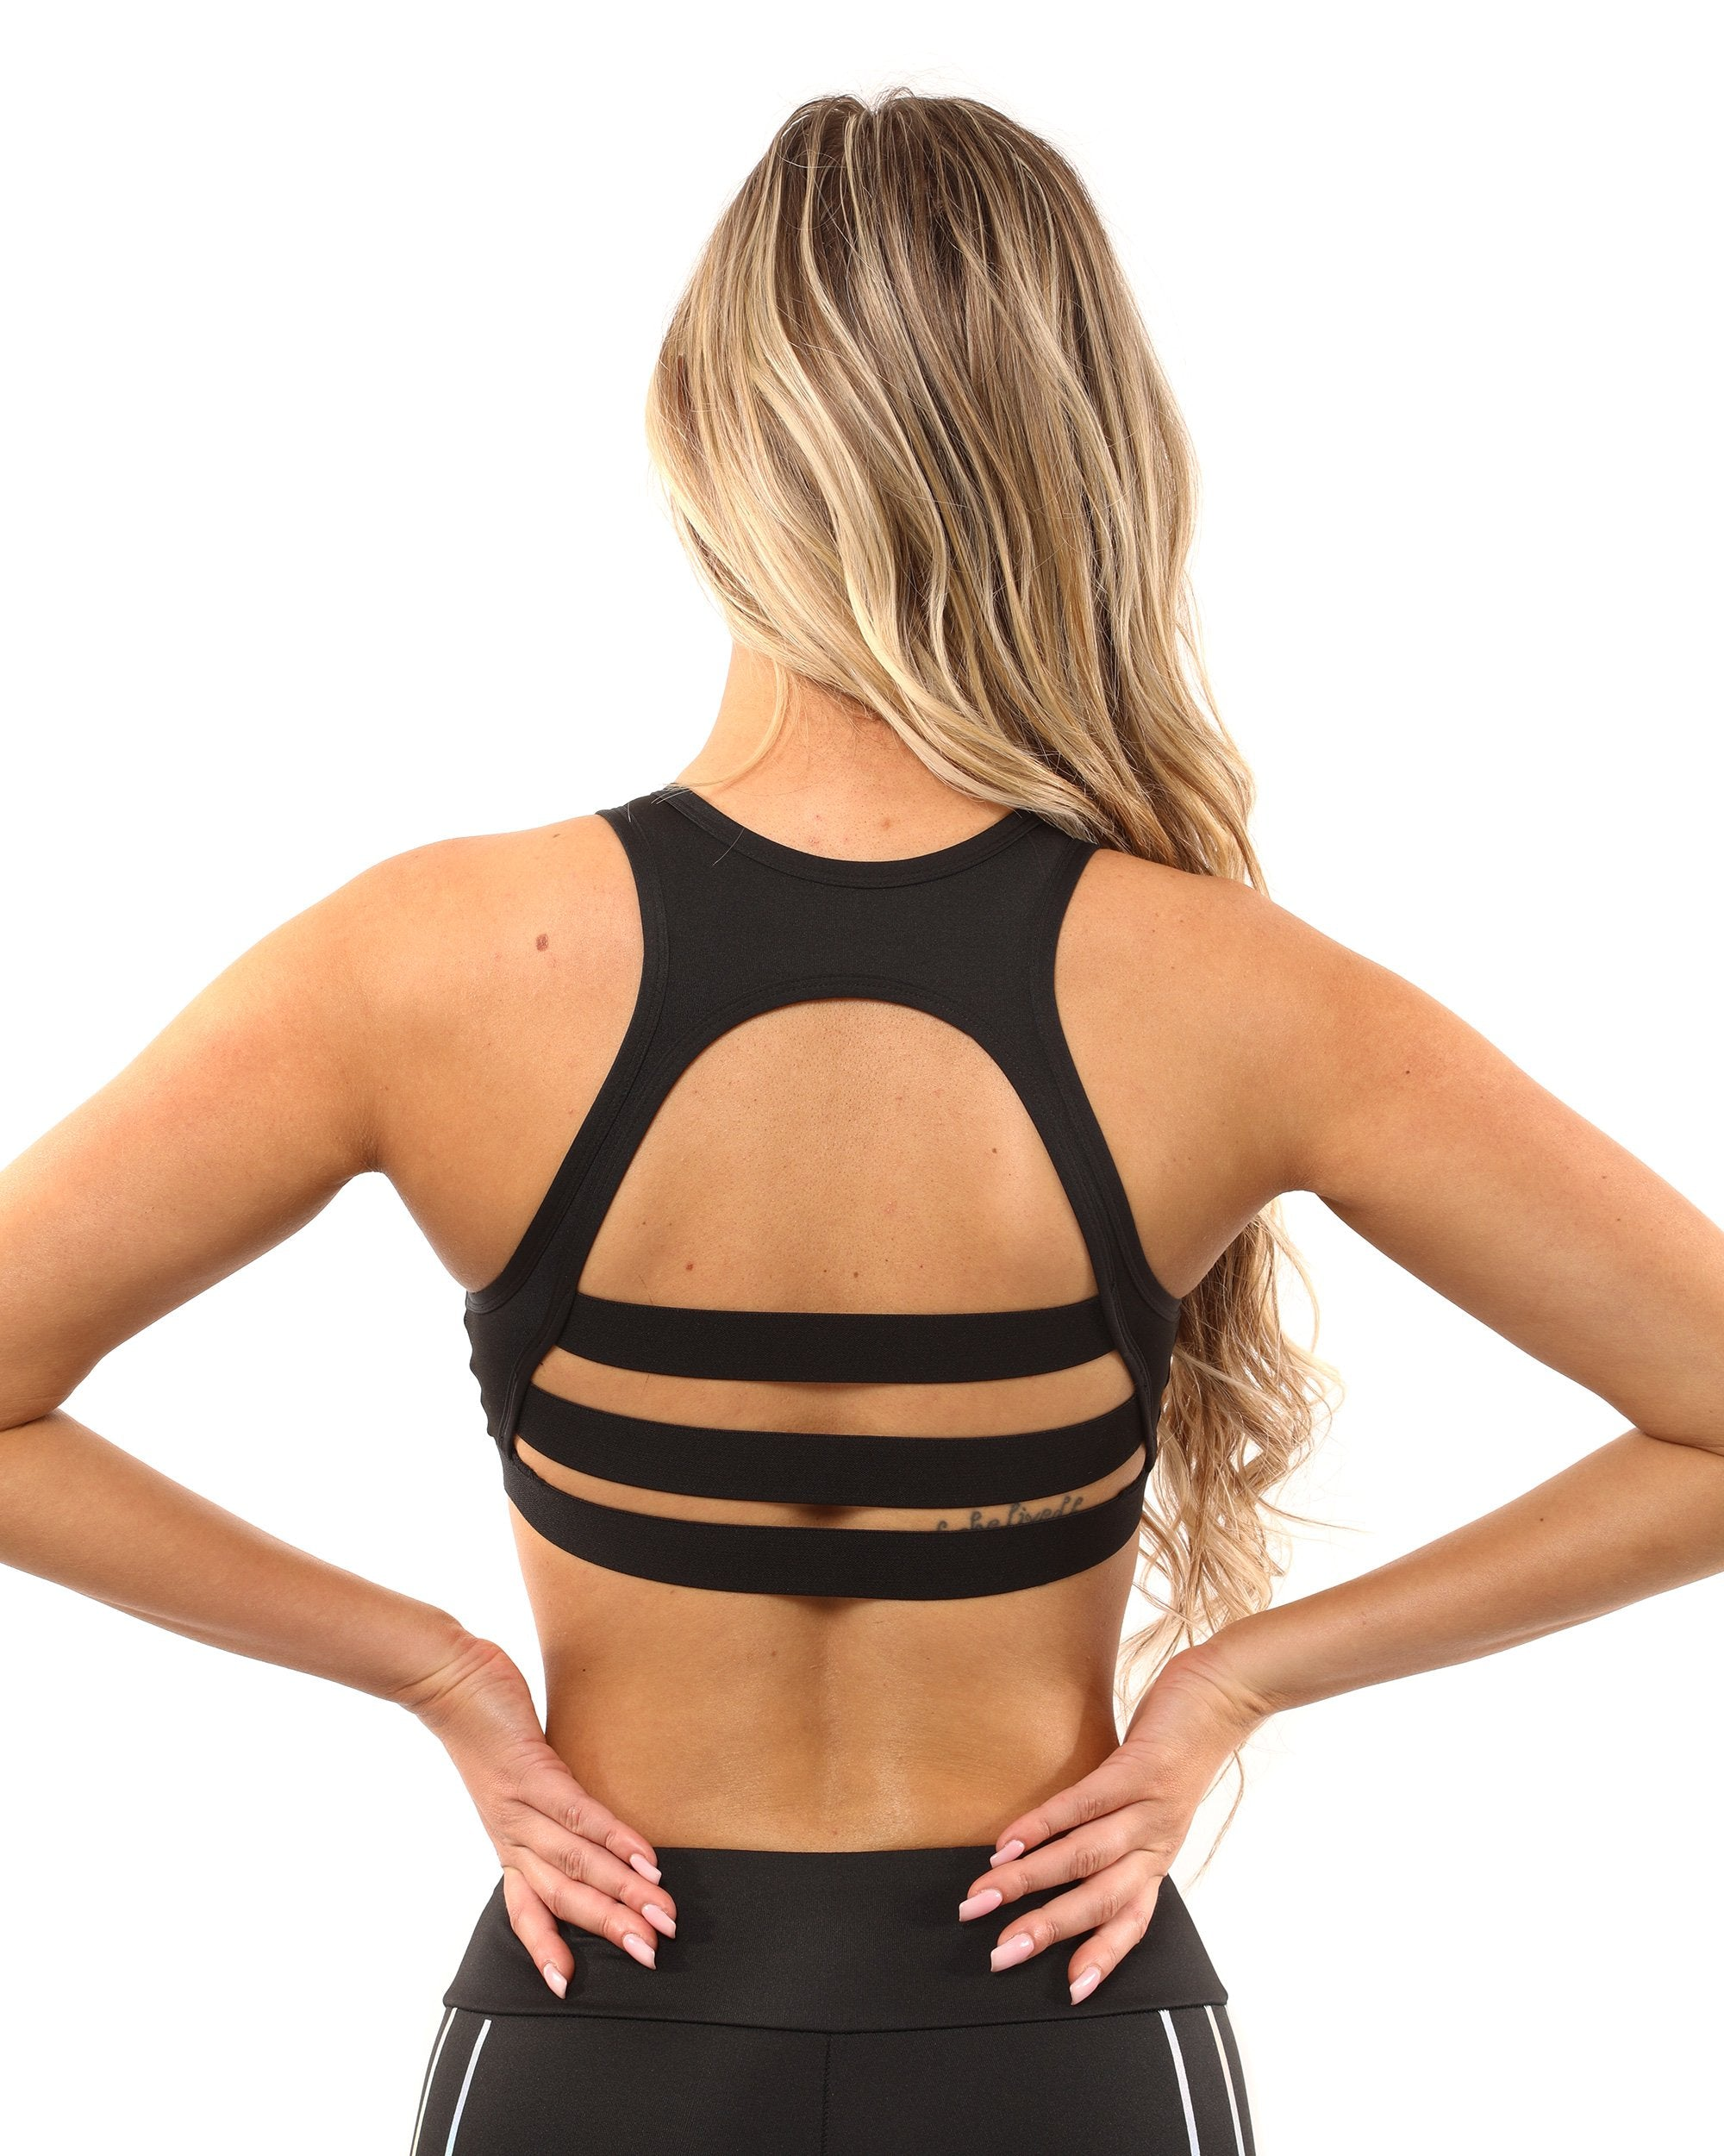 Laguna Sports Bra - Black - Chic Athletics